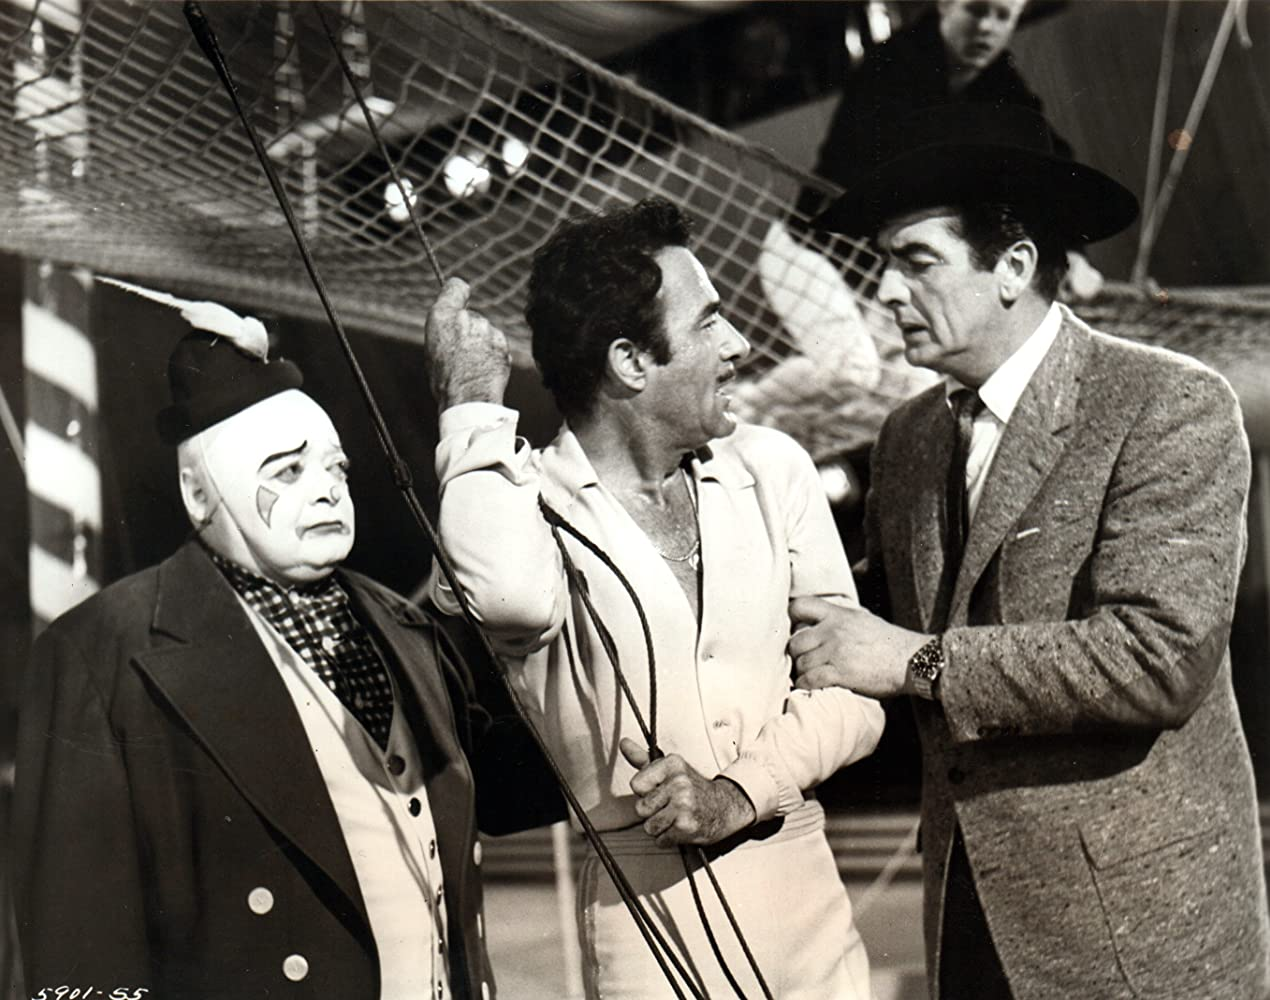 Peter Lorre, Victor Mature, and Gilbert Roland in The Big Circus (1959)